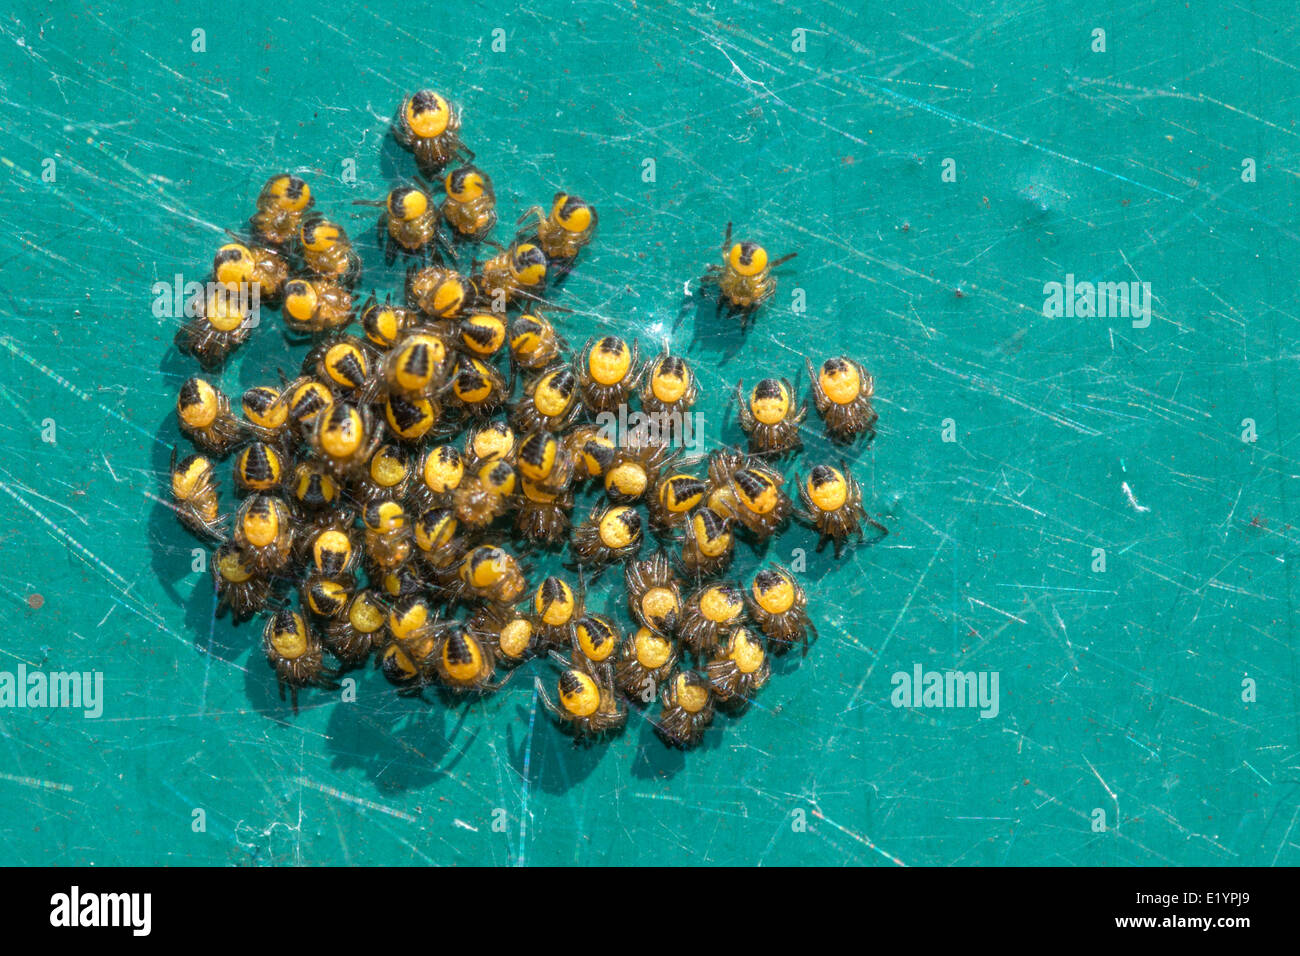 A nest of spiderlings on a green background (1 of 2) - Stock Image